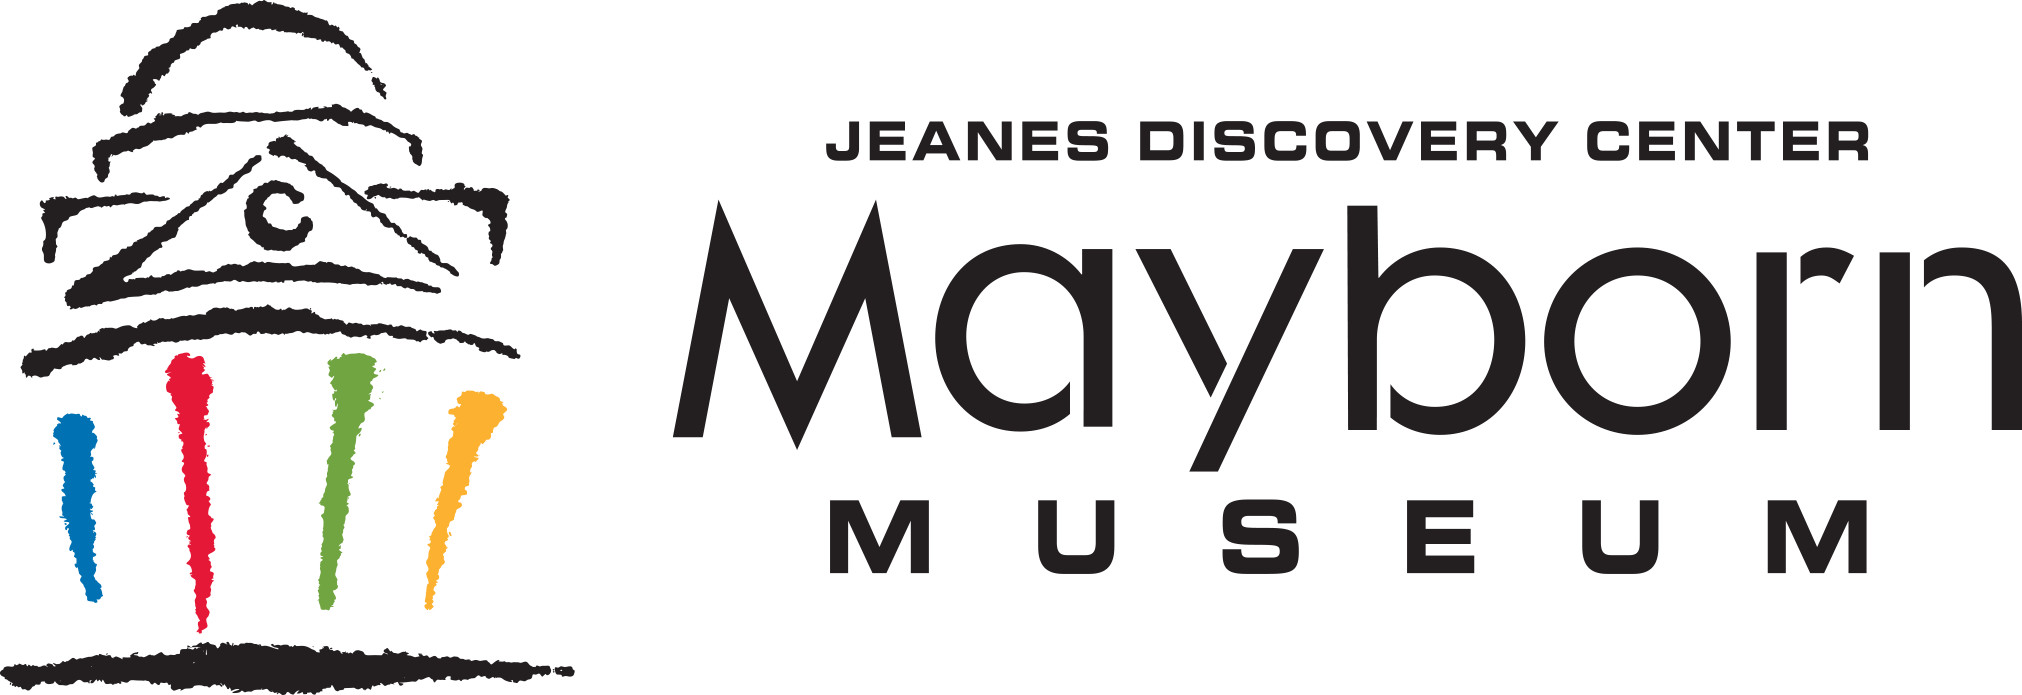 Mayborn Museum, Waco, Baylor, audio guide, audio tour, mobile tour